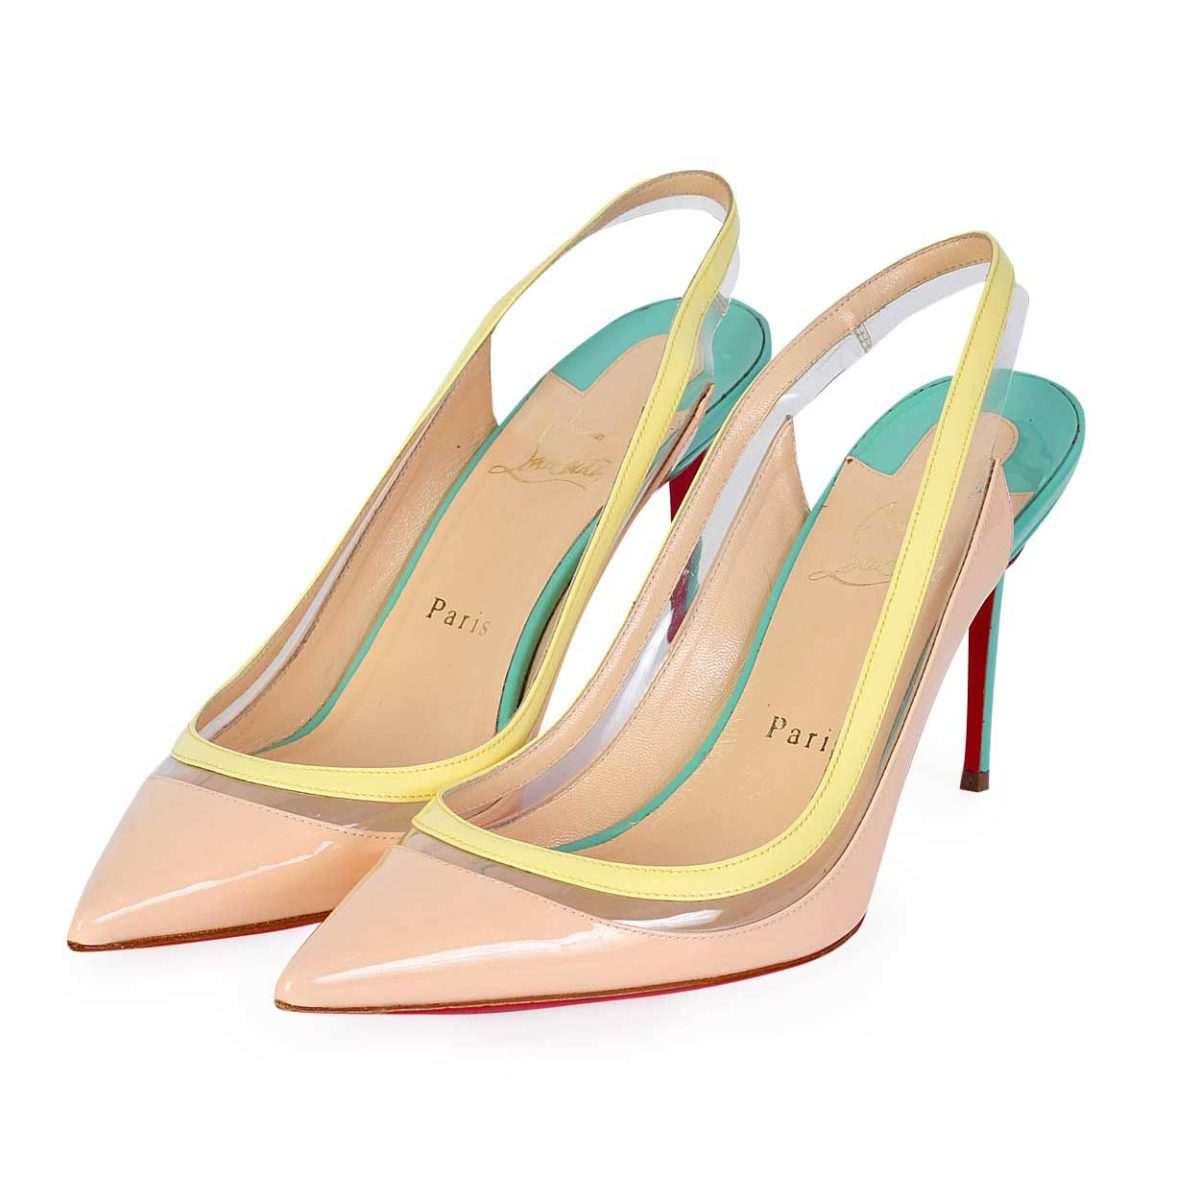 factory price 35bf8 7f05c CHRISTIAN LOUBOUTIN Patent Leather & PVC Paulina 85 Pumps - S: 39 (6)